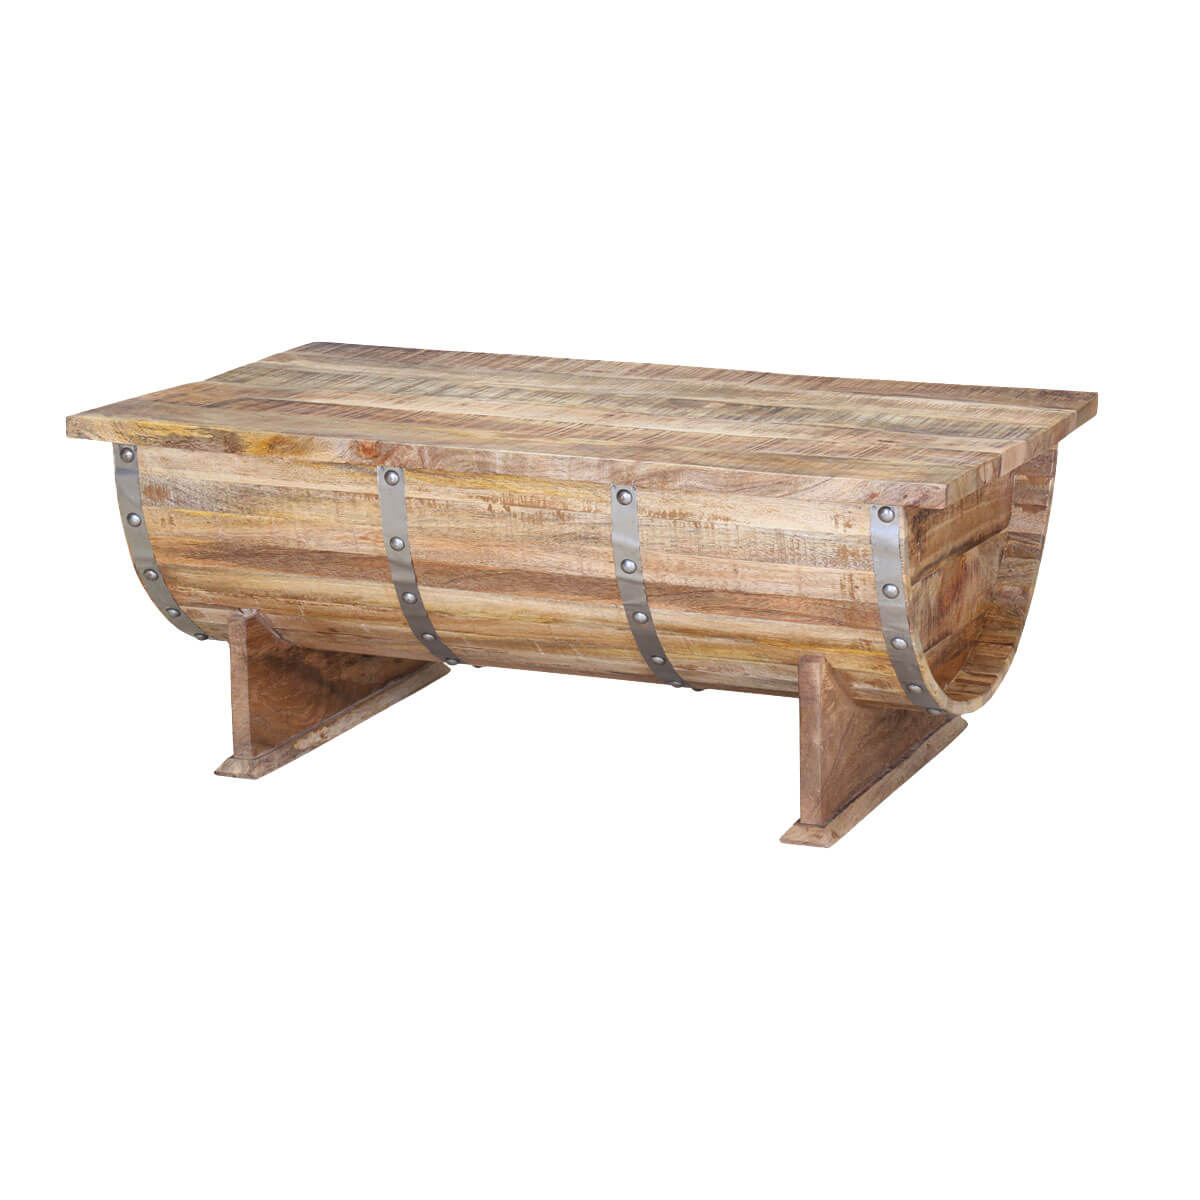 Rustic Pioneer Mango Wood Standing Half Barrel Chest Coffee Table